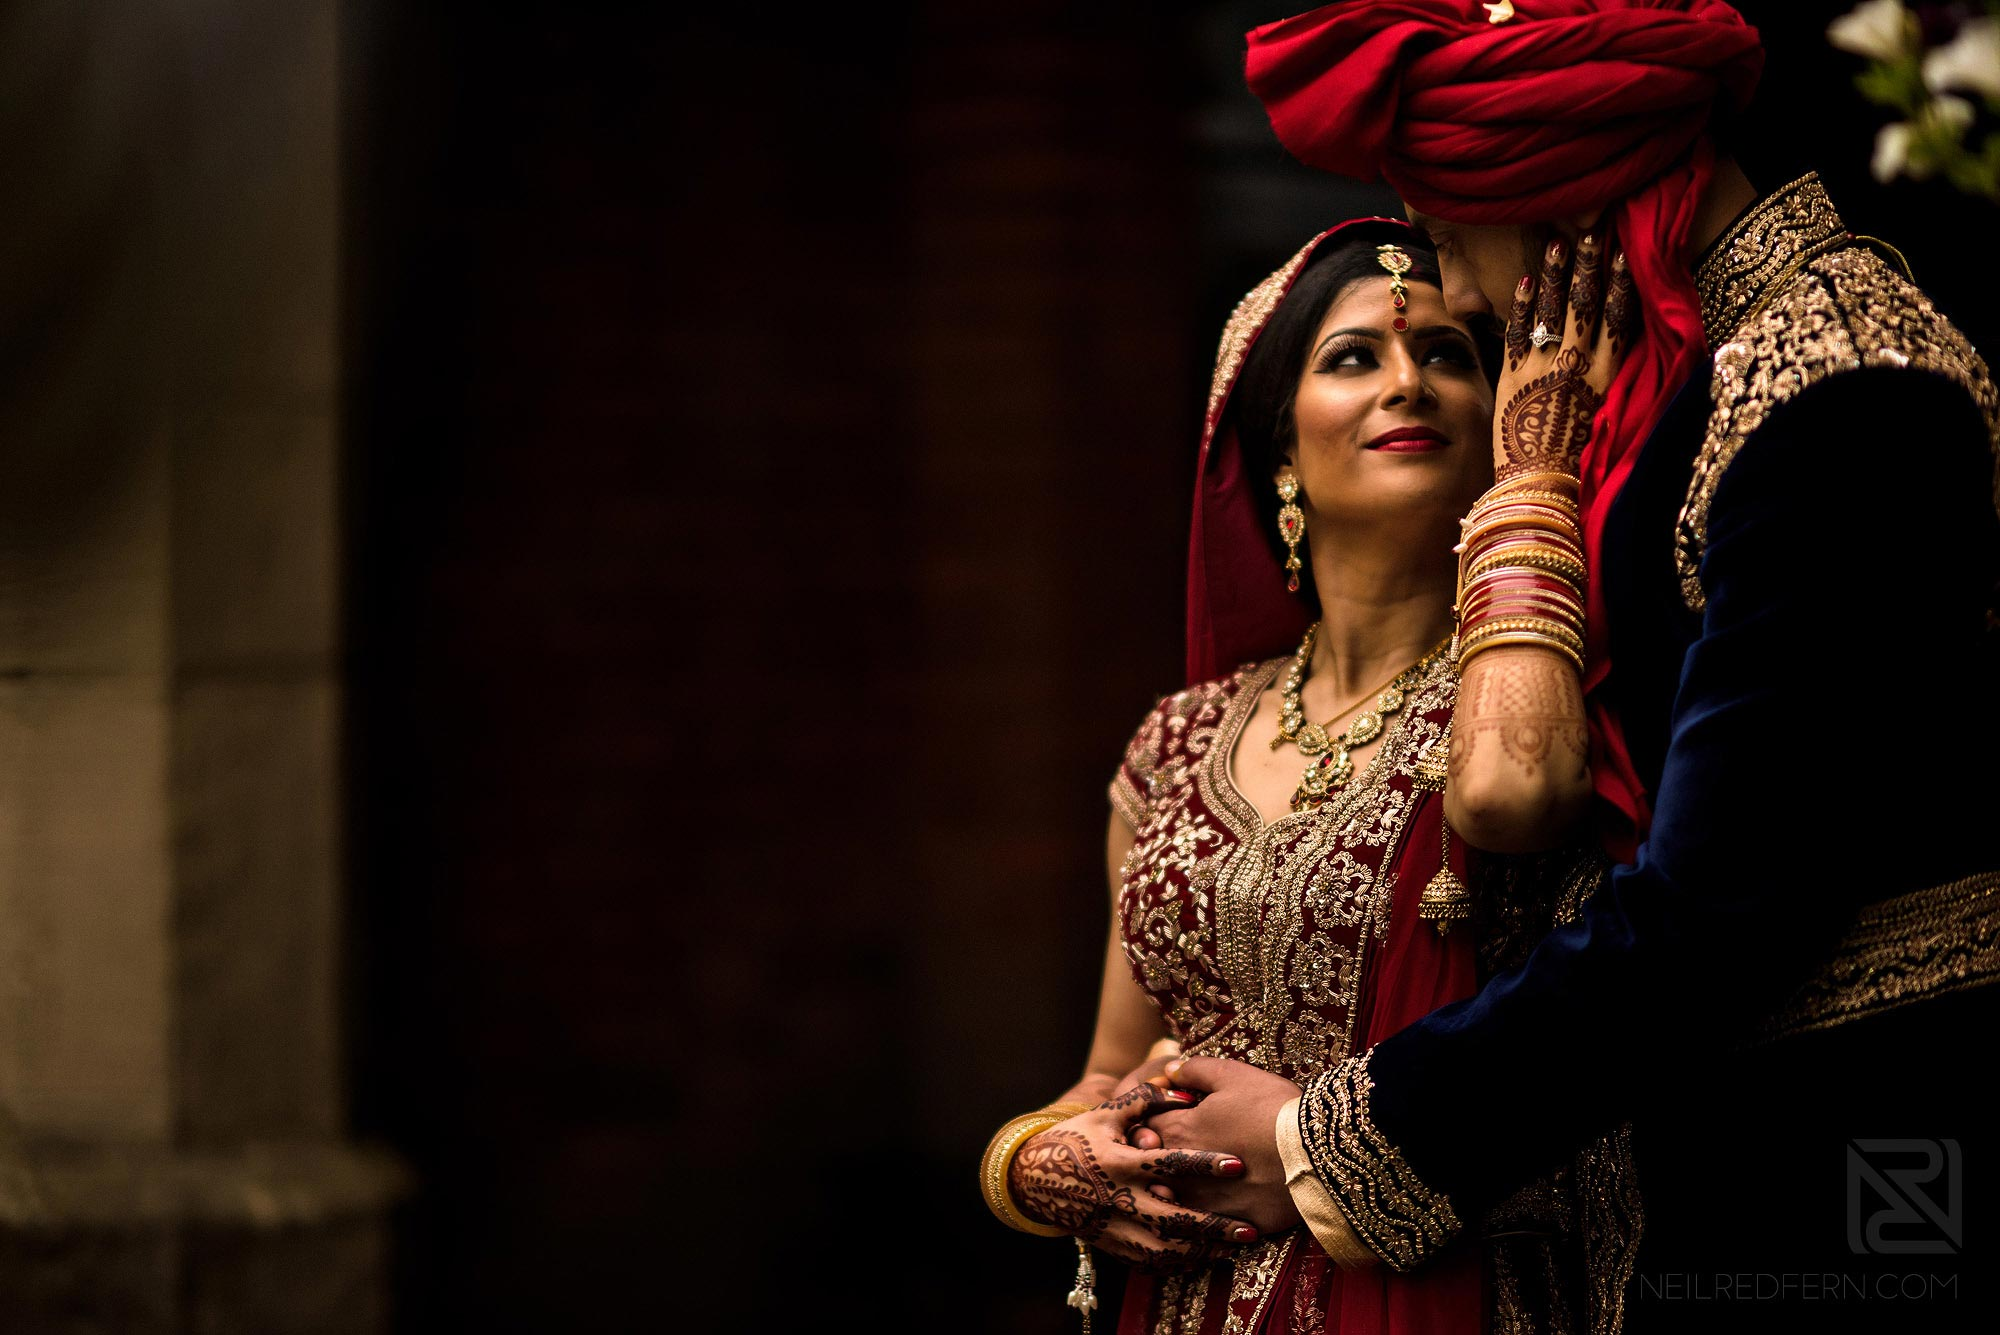 special moment between Indian bride and groom in Manchester